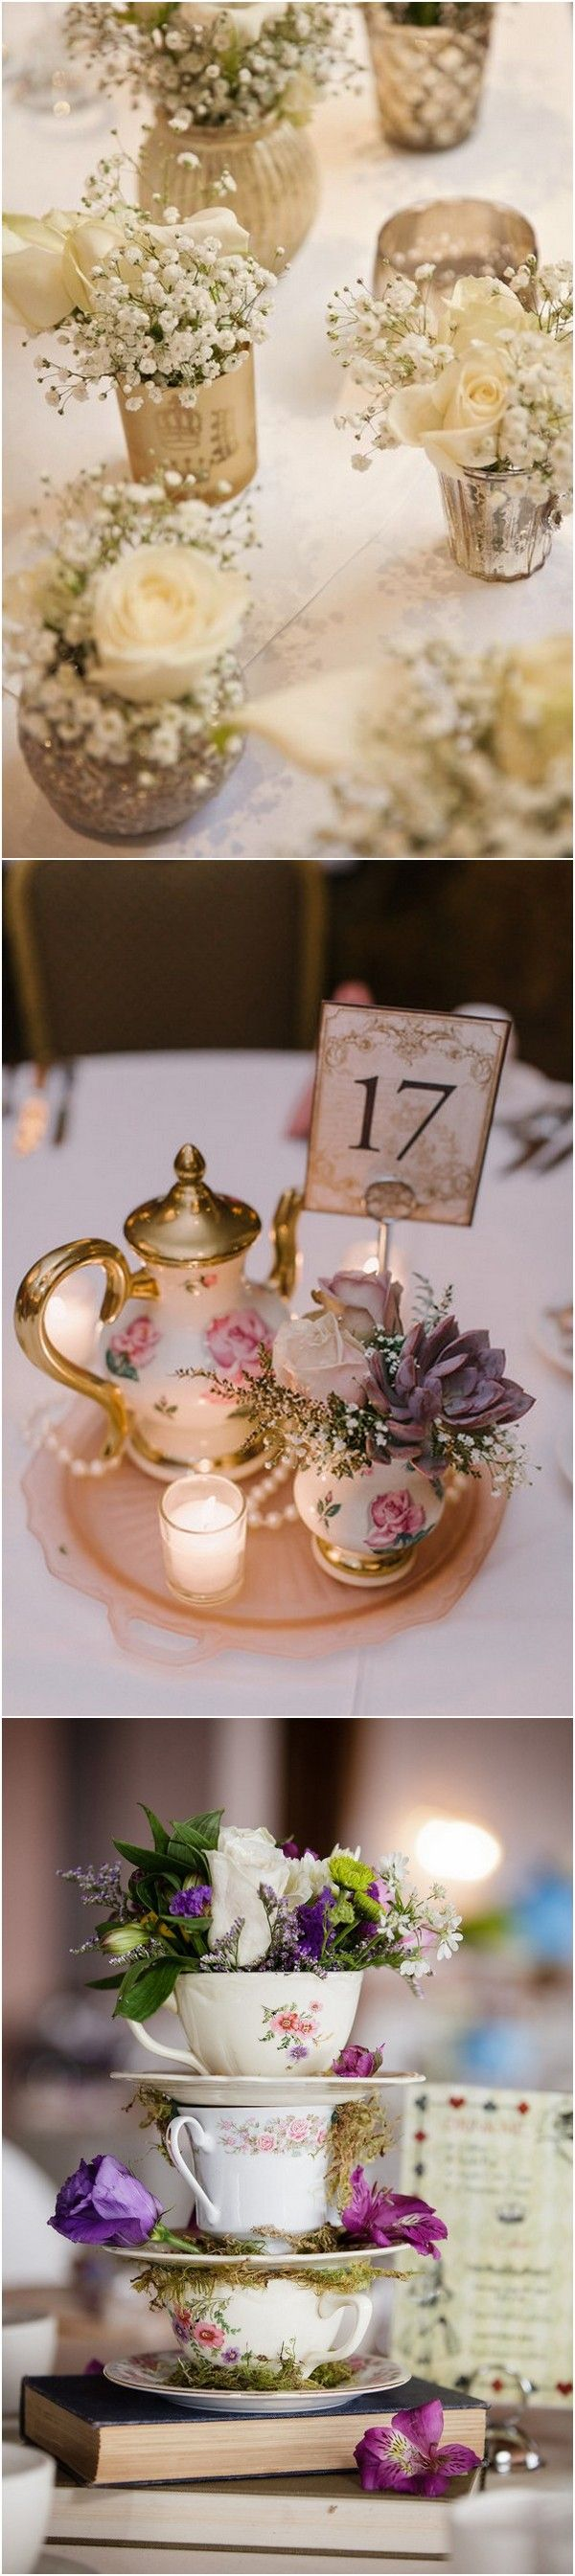 vintage teacup wedding centerpieces